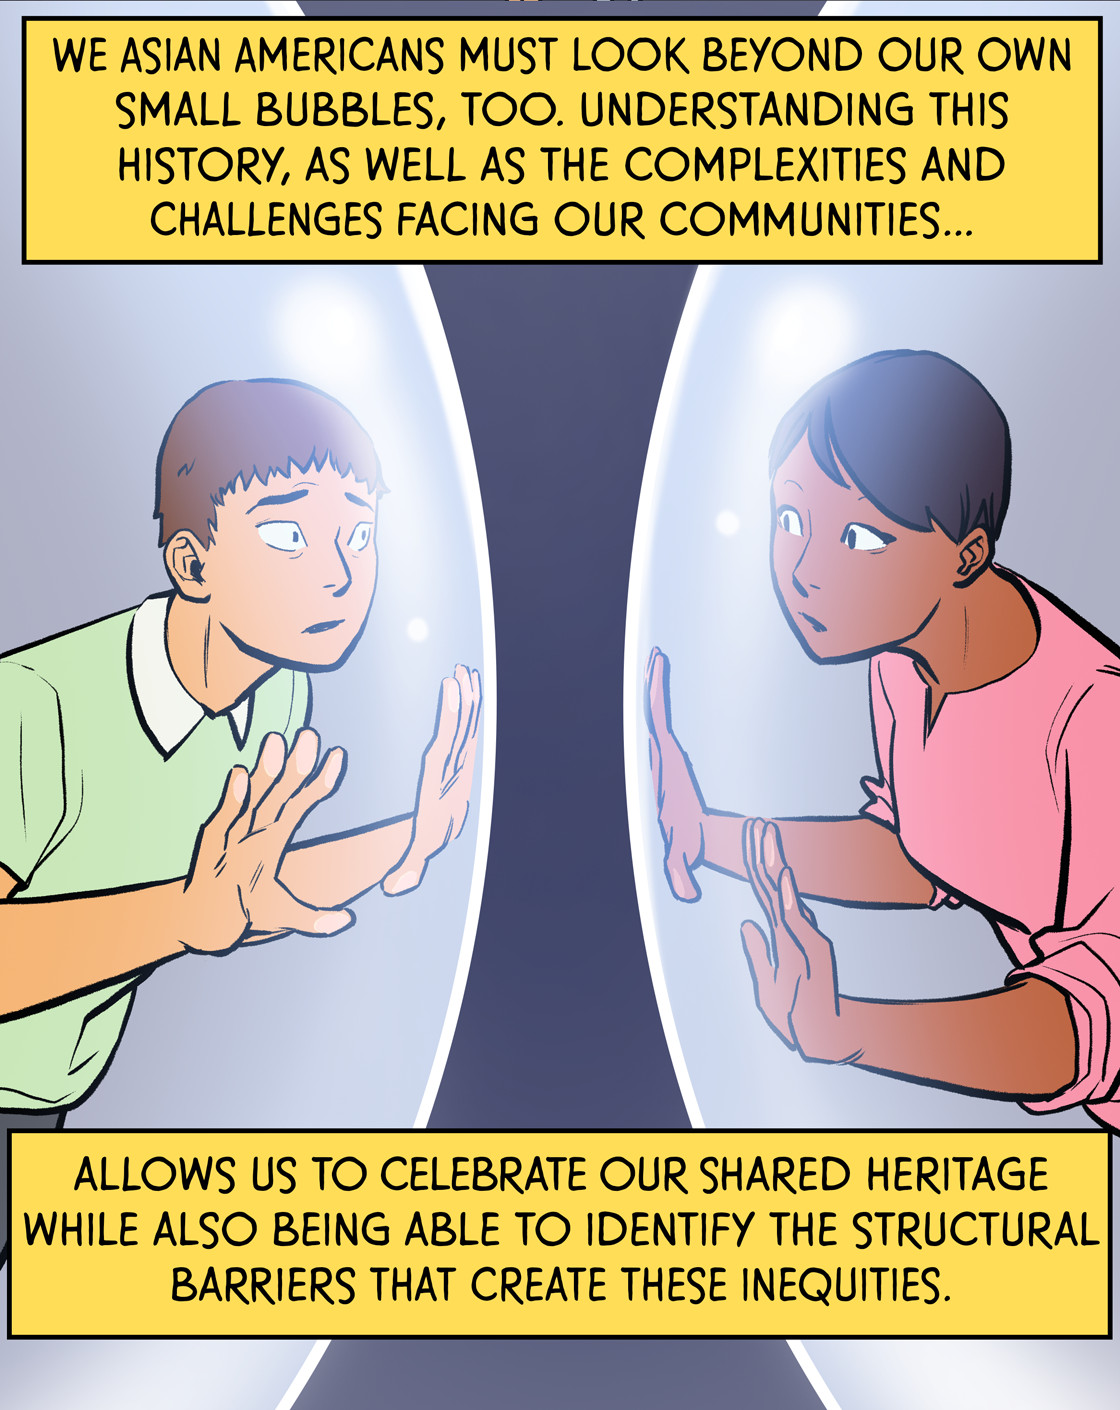 We Asian Americans must look beyond our own small bubbles, too. Understanding this history, as well as the complexities and challenges facing our communities, allows us to celebrate our shared heritage connections while also being able to identify the structural barriers that create these inequities.